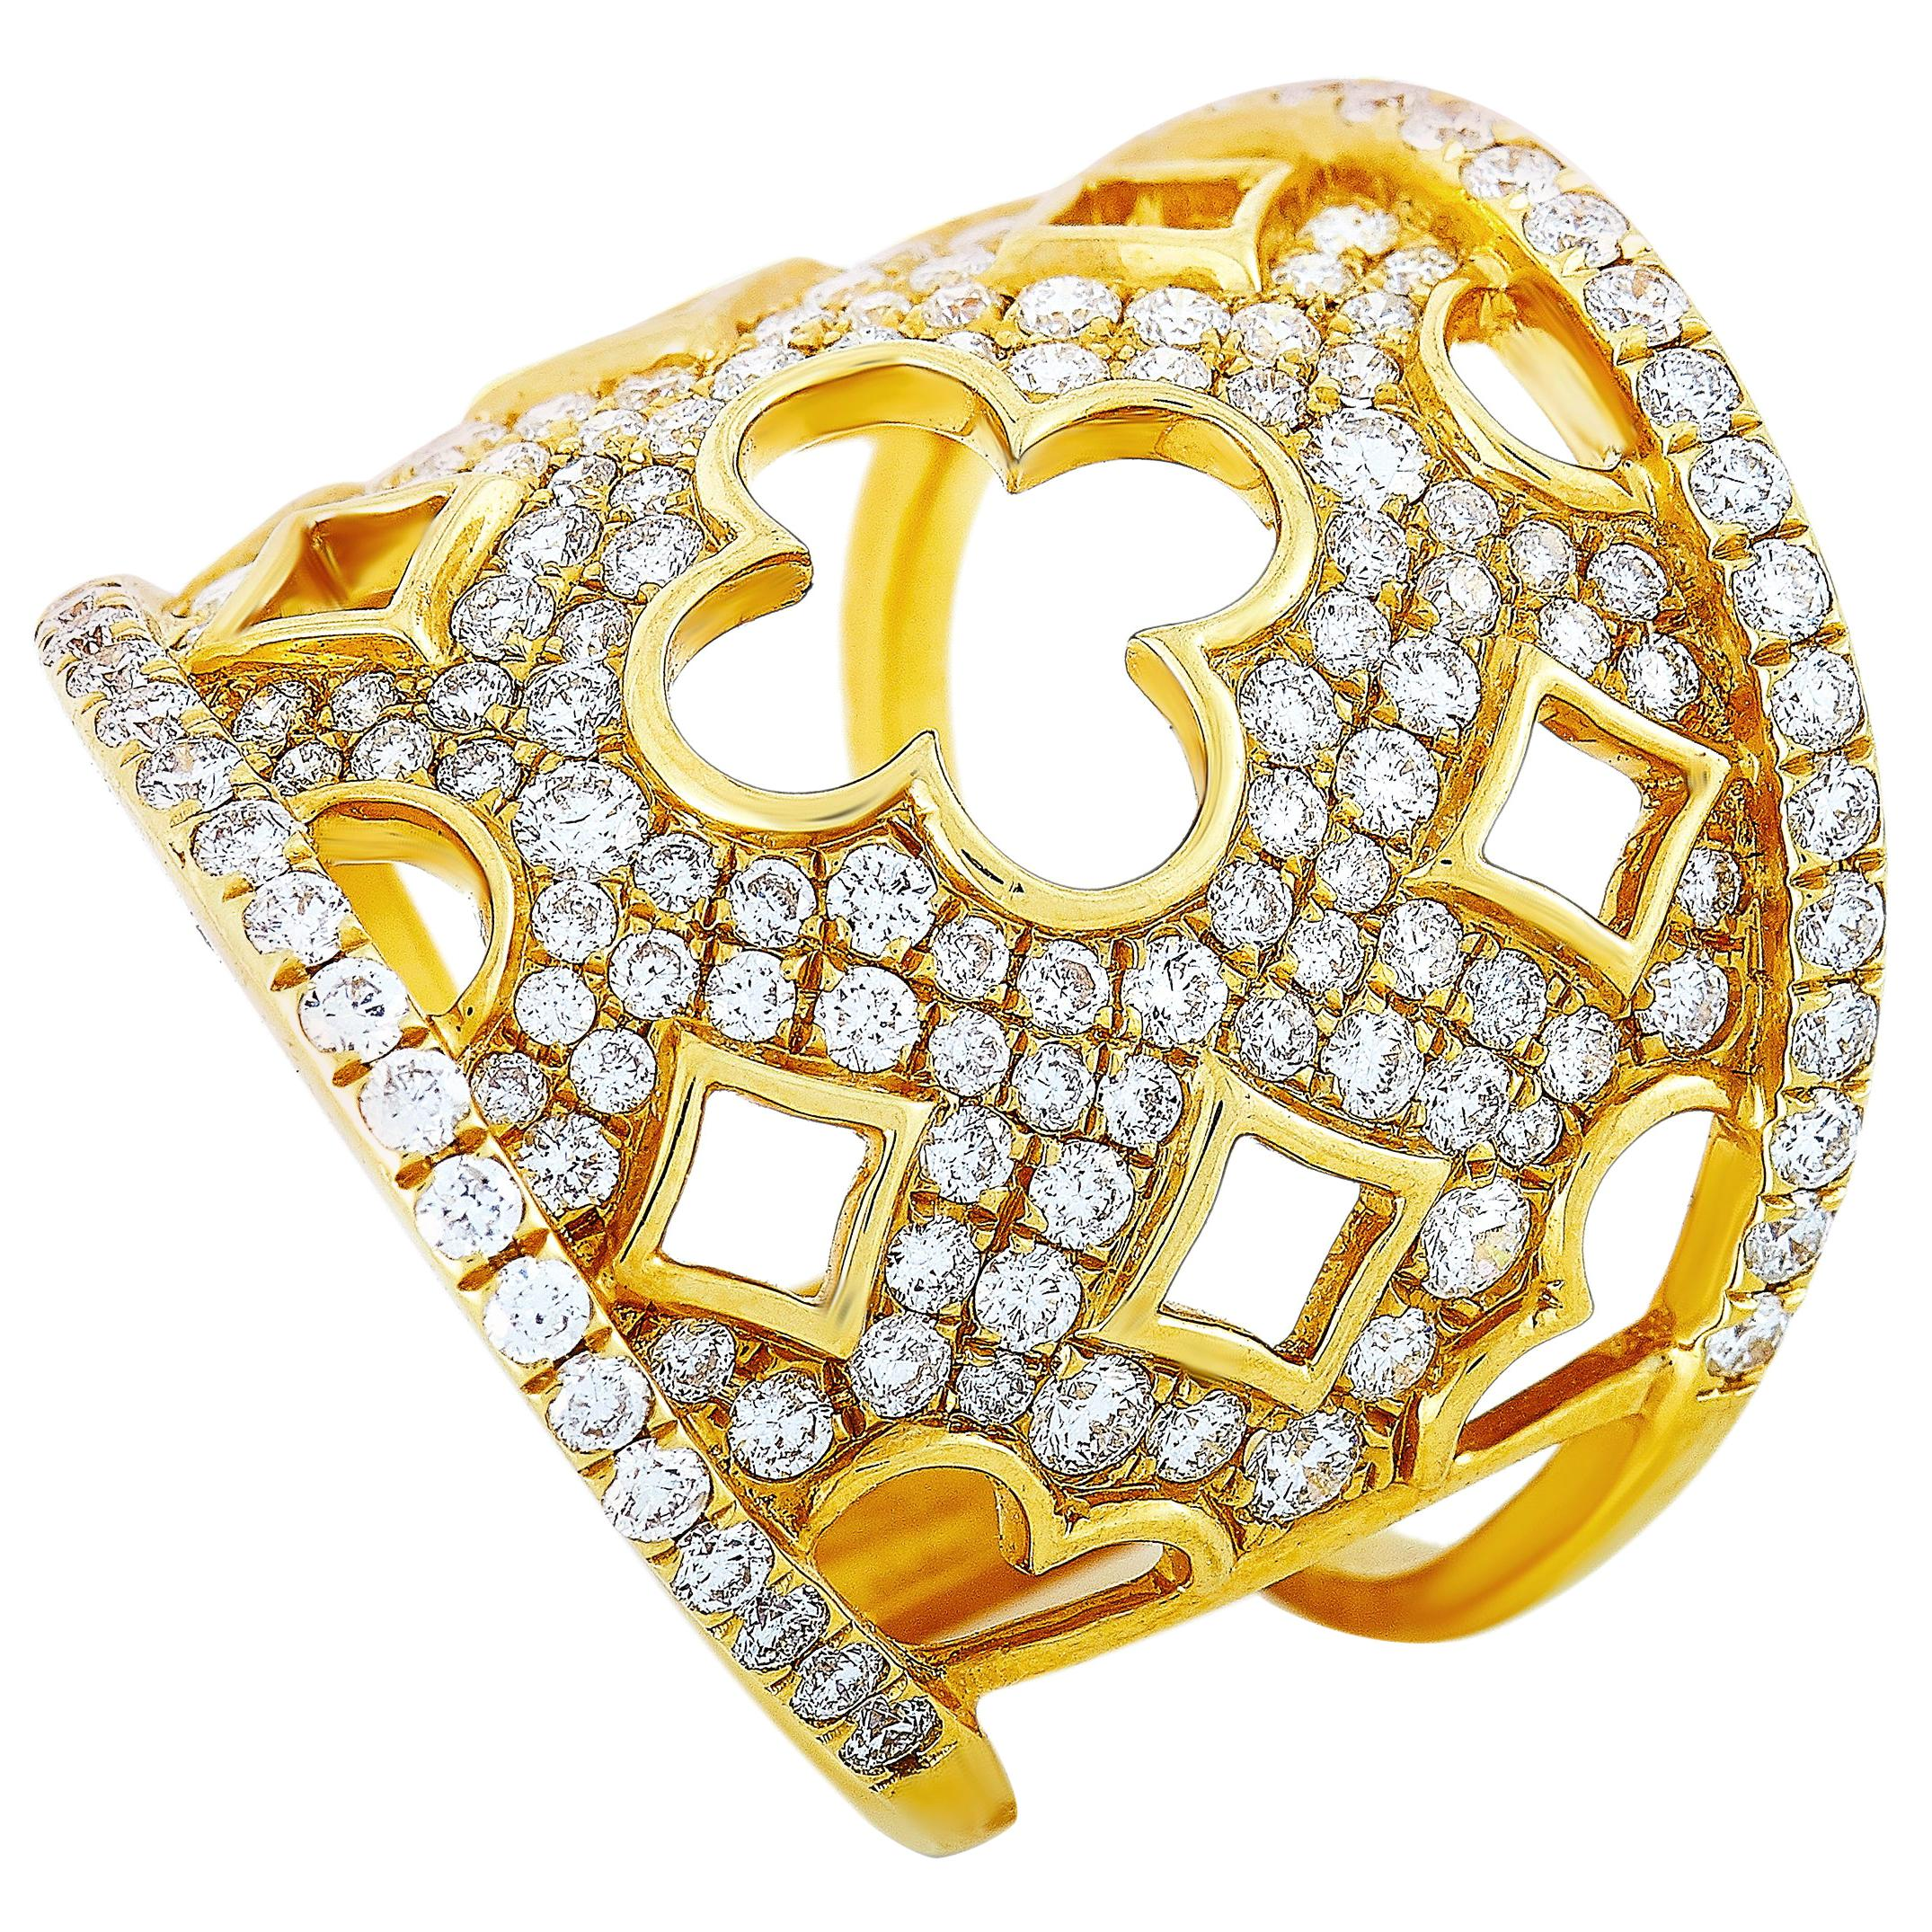 LB Exclusive Dome Rings